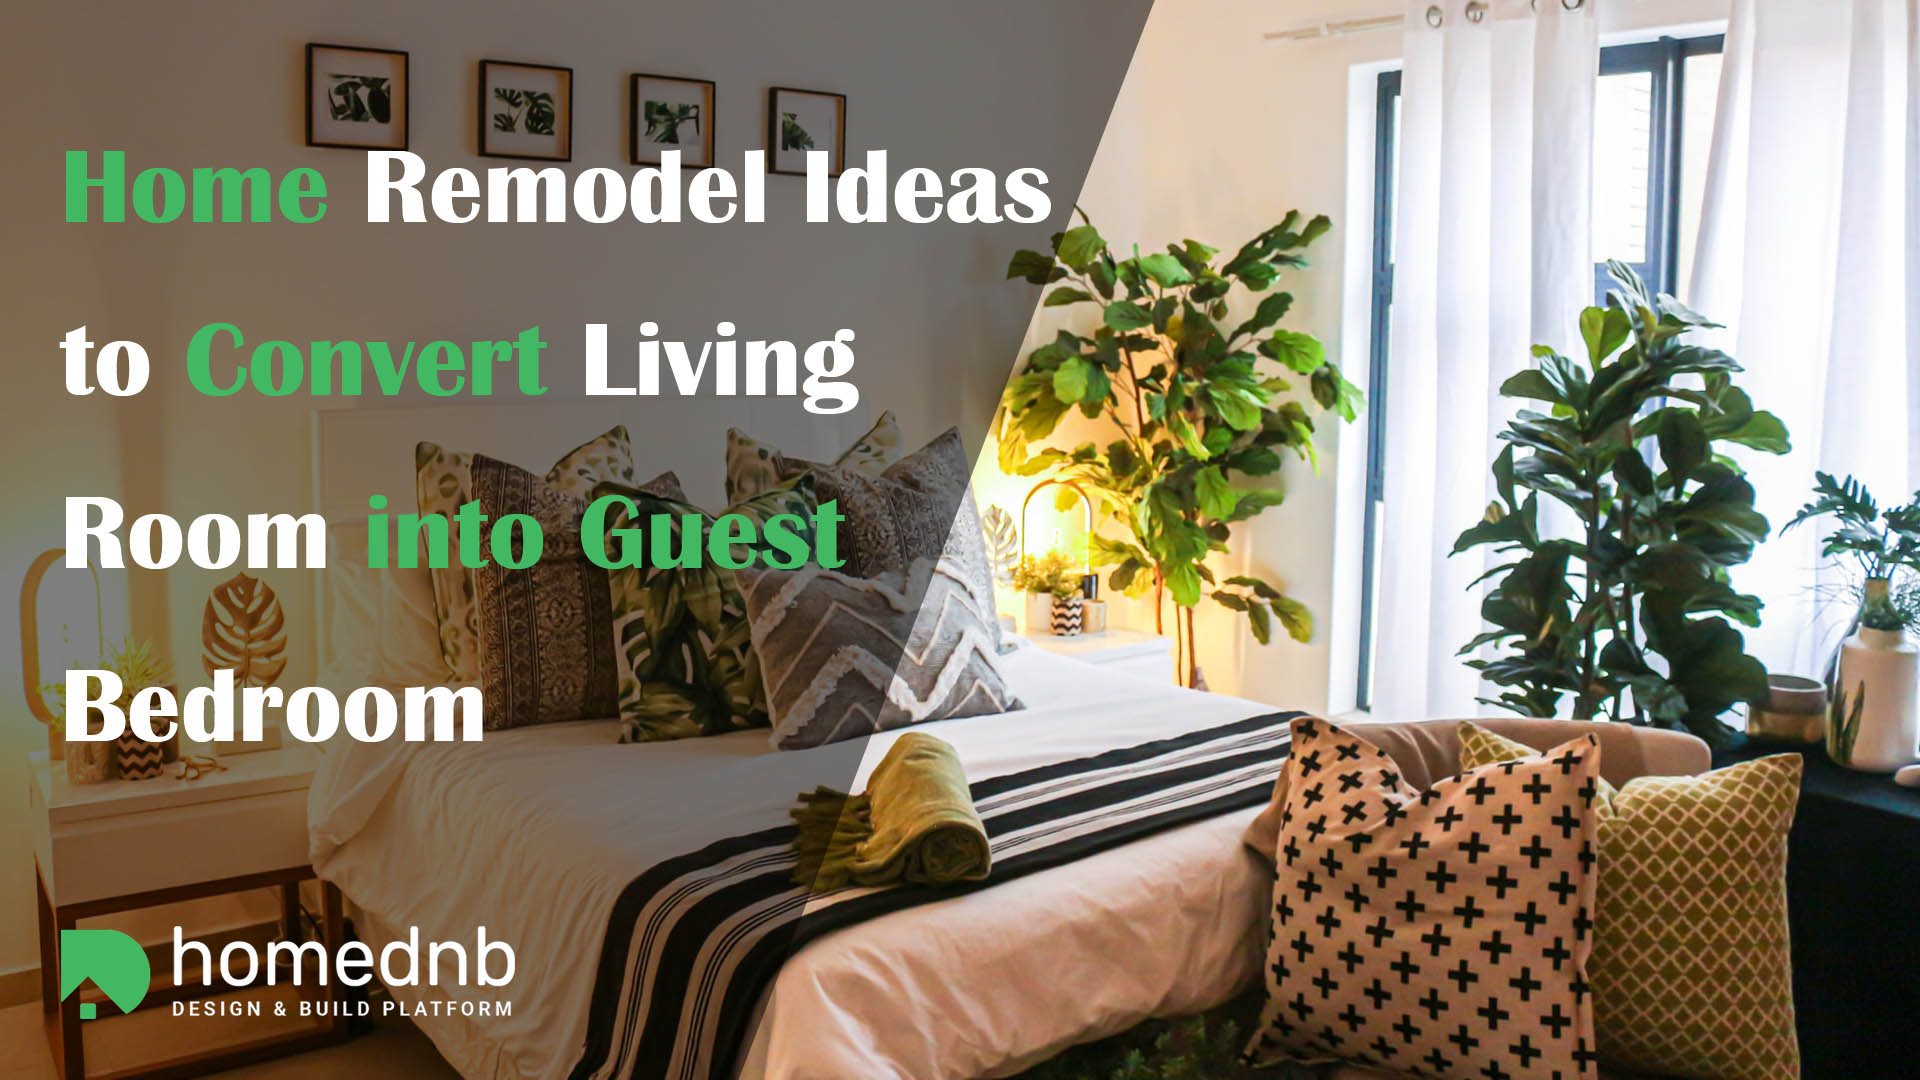 Home Remodel Ideas to Convert Living Room into Guest Bedroom